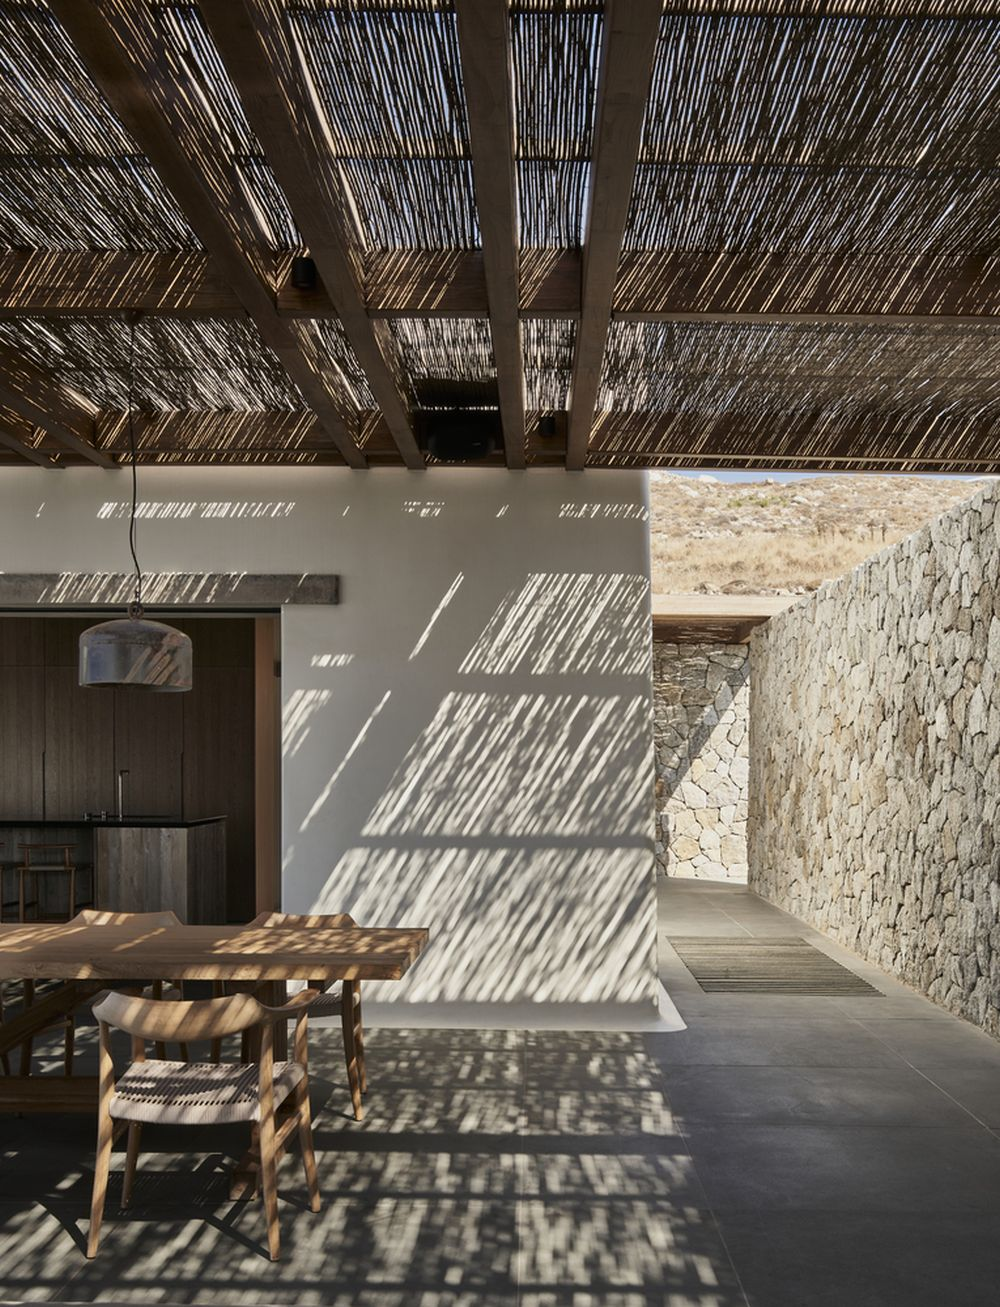 The courtyard is the central meeting point between all three volumes and has a traditional pergola